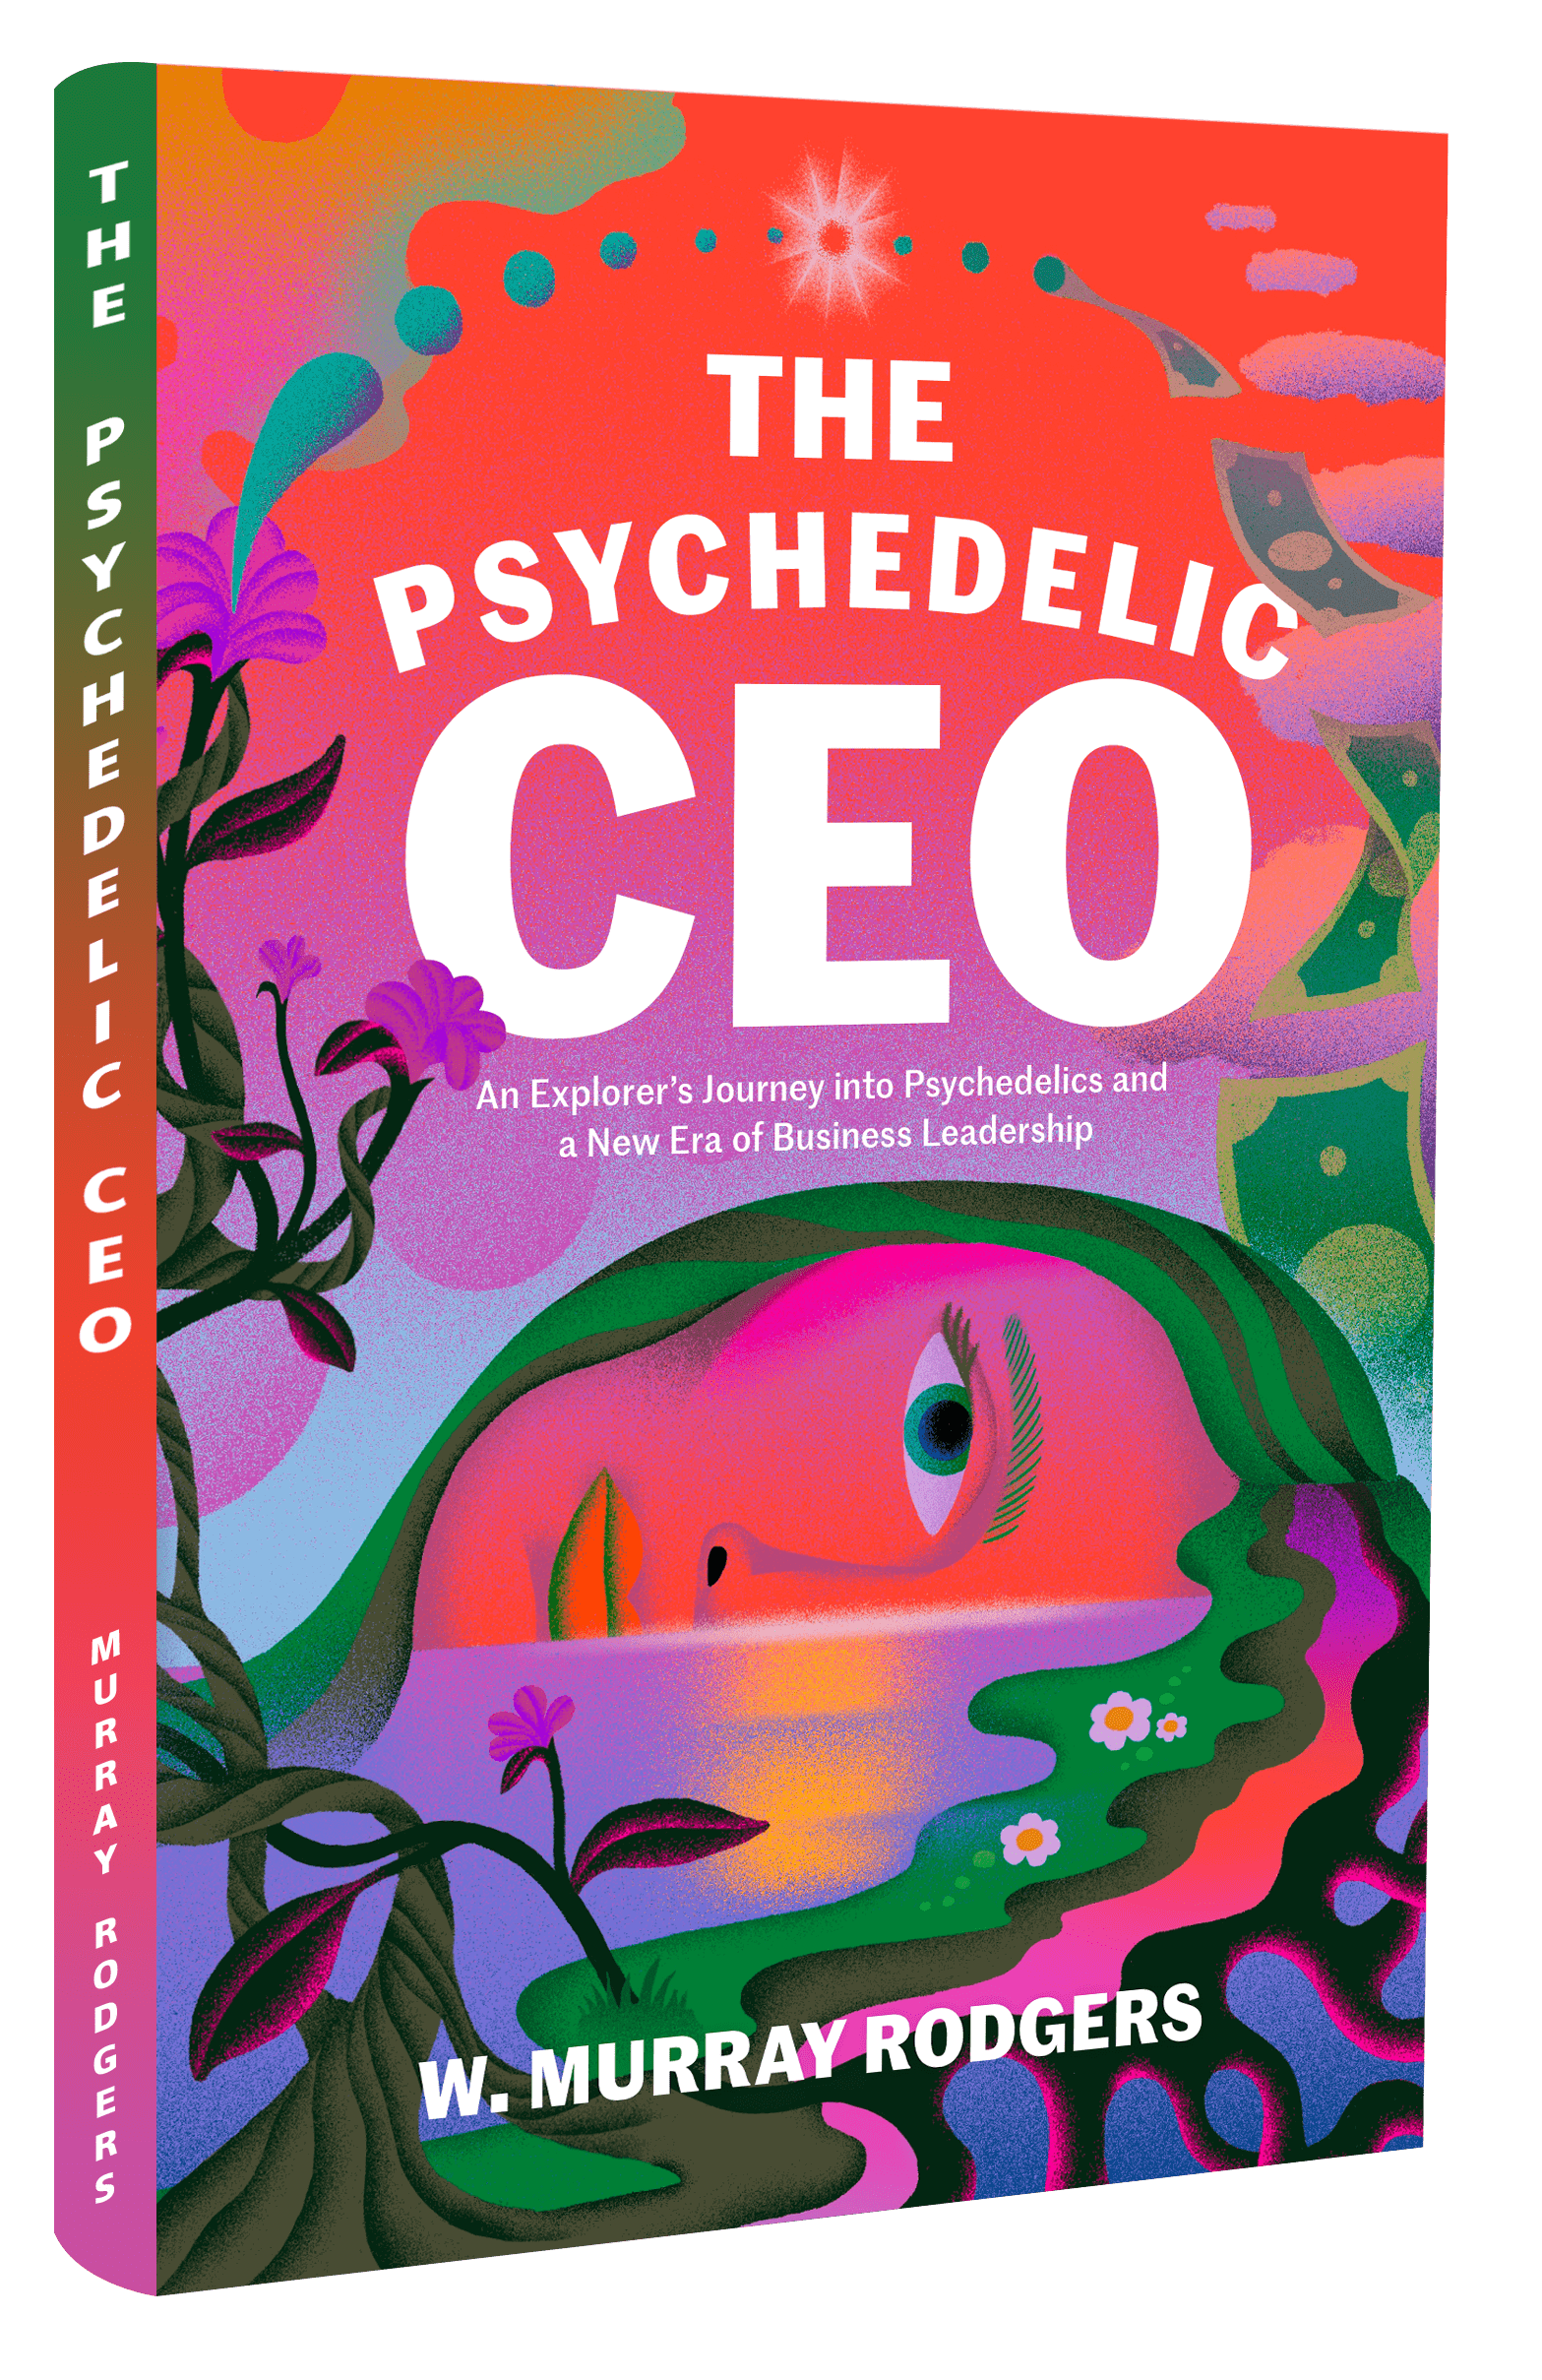 The Psychedelic CEO